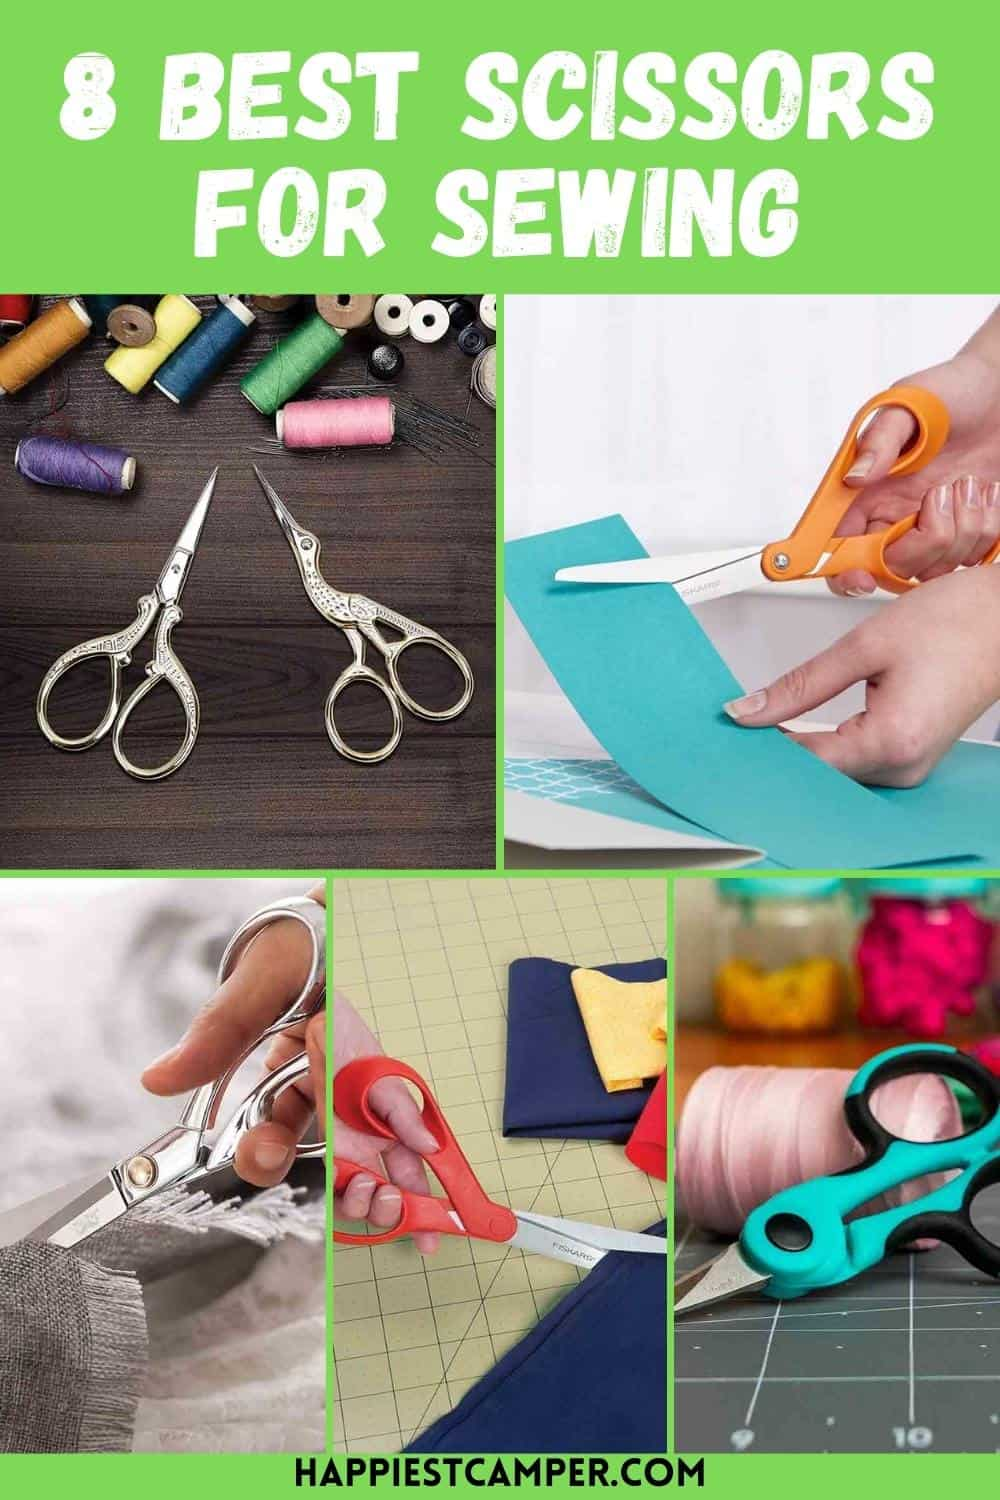 8 Best Scissors For Sewing